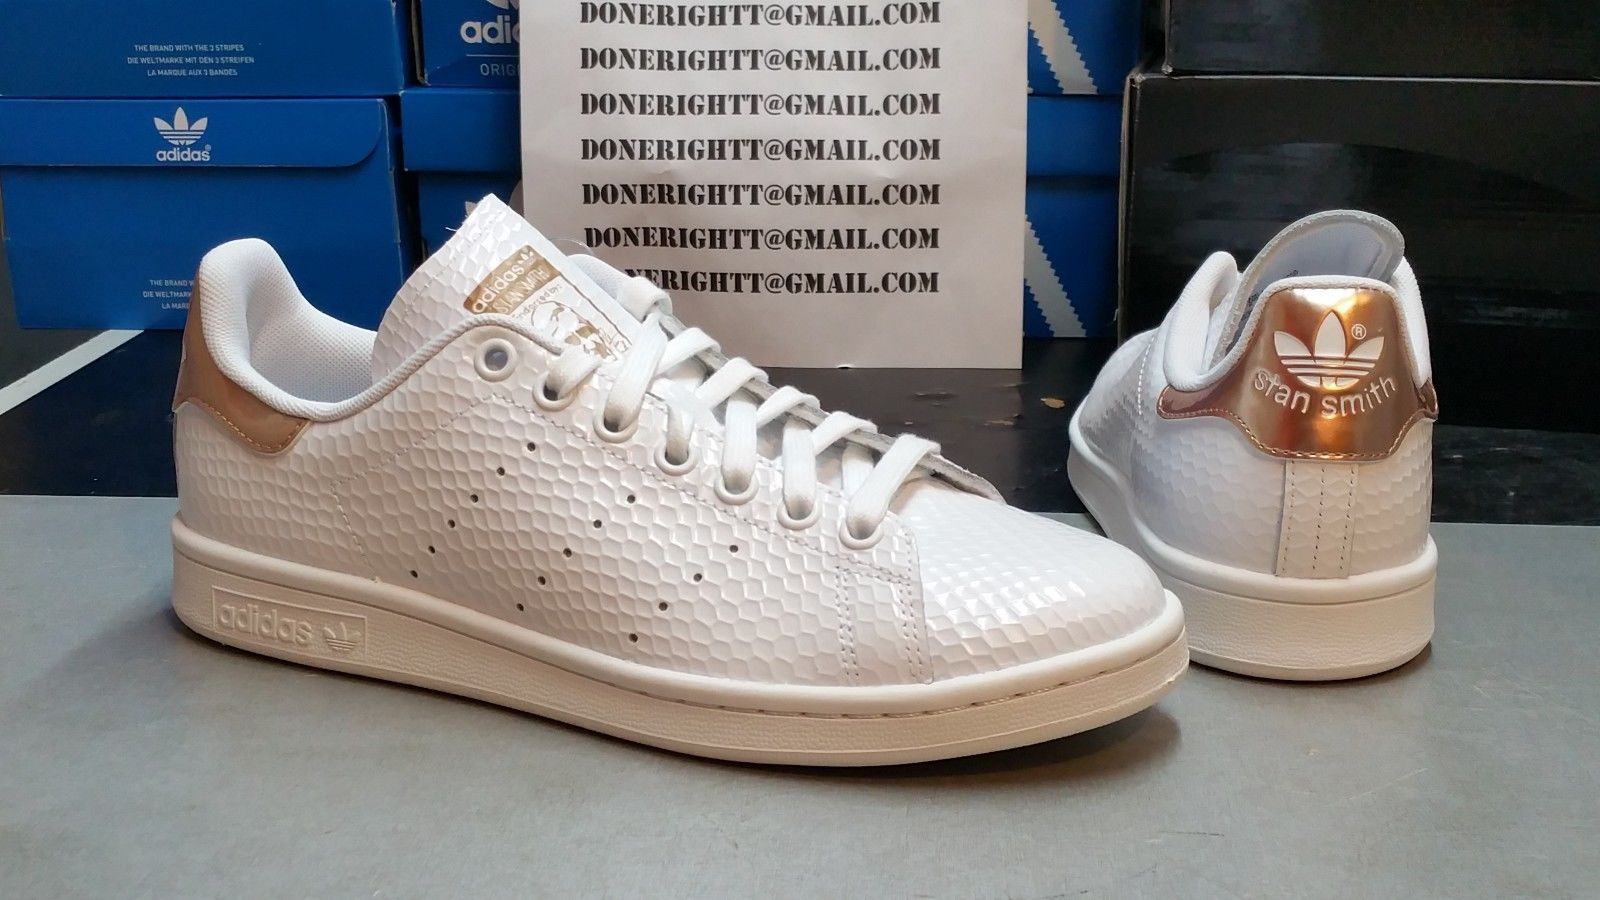 low priced b3905 a5fe6 Womens Adidas Stan Smith Copper White Kettle Snakeskin Metallic Rose Gold  Yeezy   eBay, 39